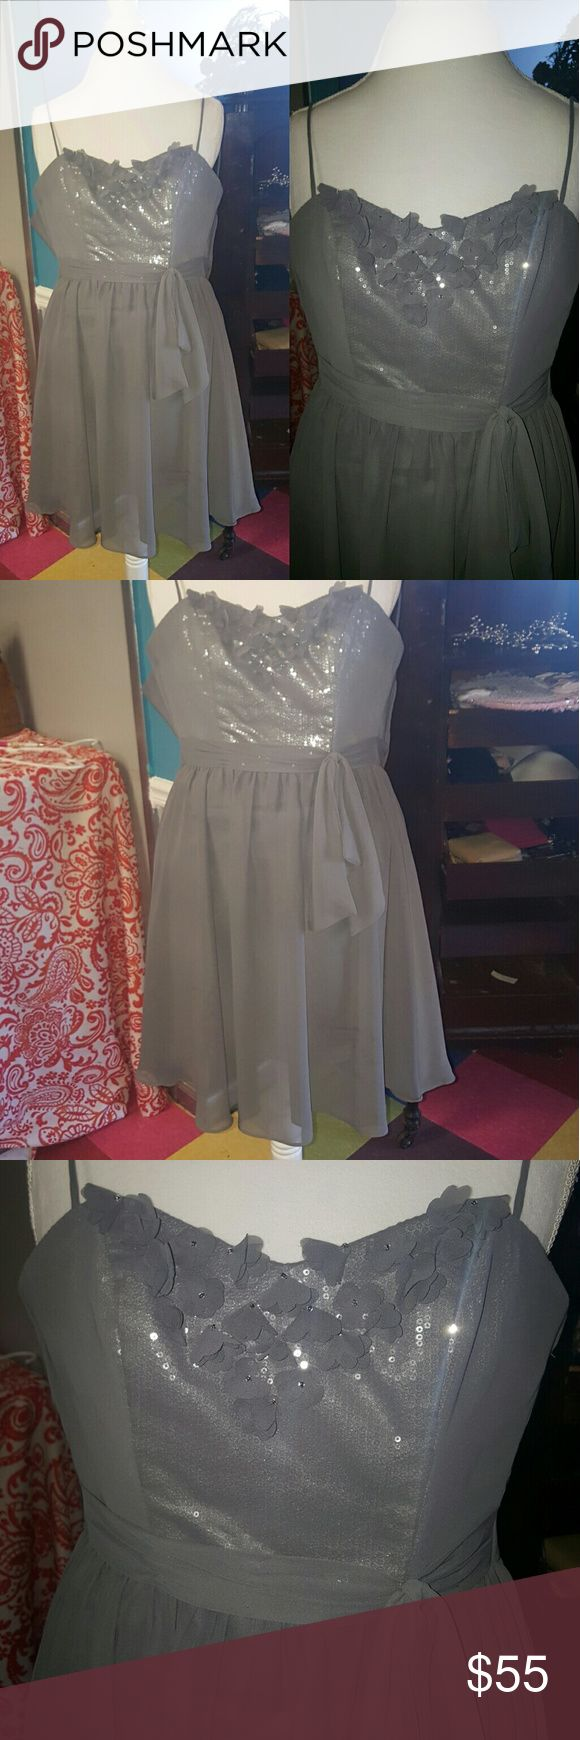 Disney Fairy Tale Weddings gray dress Excellent Disney Fairy Tale Weddings by Alfred Angelo Gray with sequins. Flower embellishments, spaghetti straps. Flowy and romantic! Size 0.  Excellent condition Disney Fairy Tale Weddings Dresses